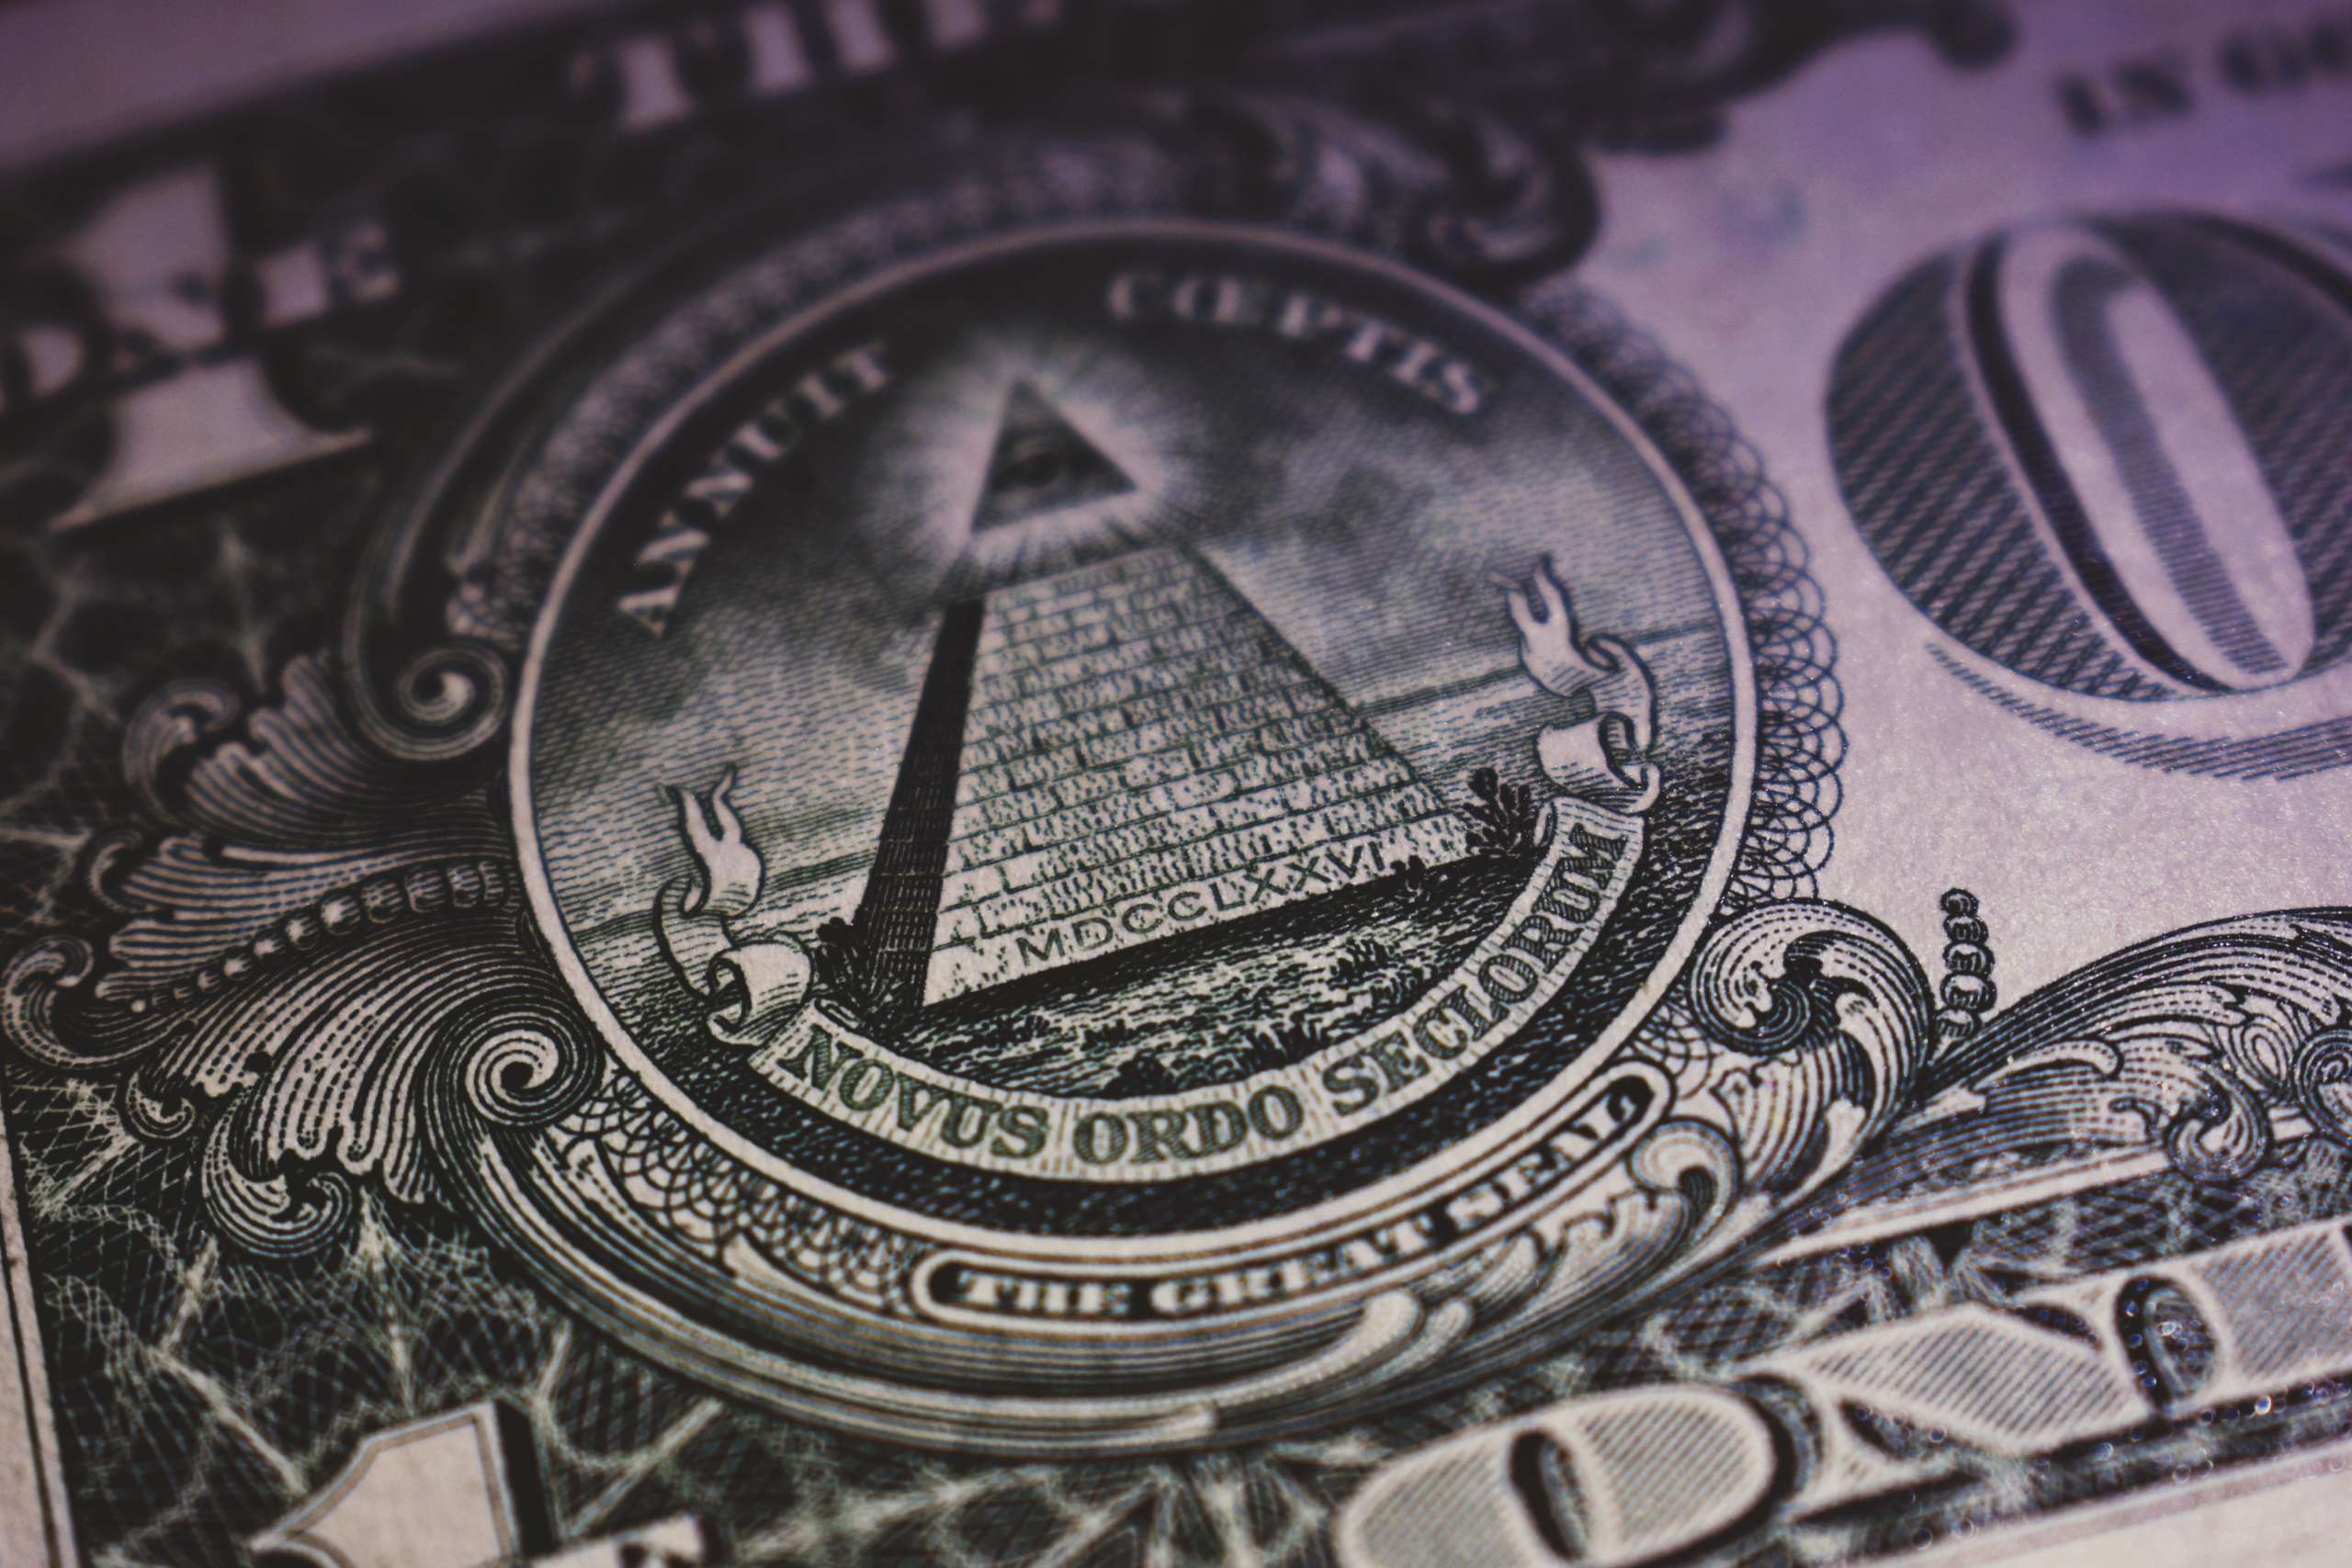 The Future of Money: Does Money Have Intrinsic Value?